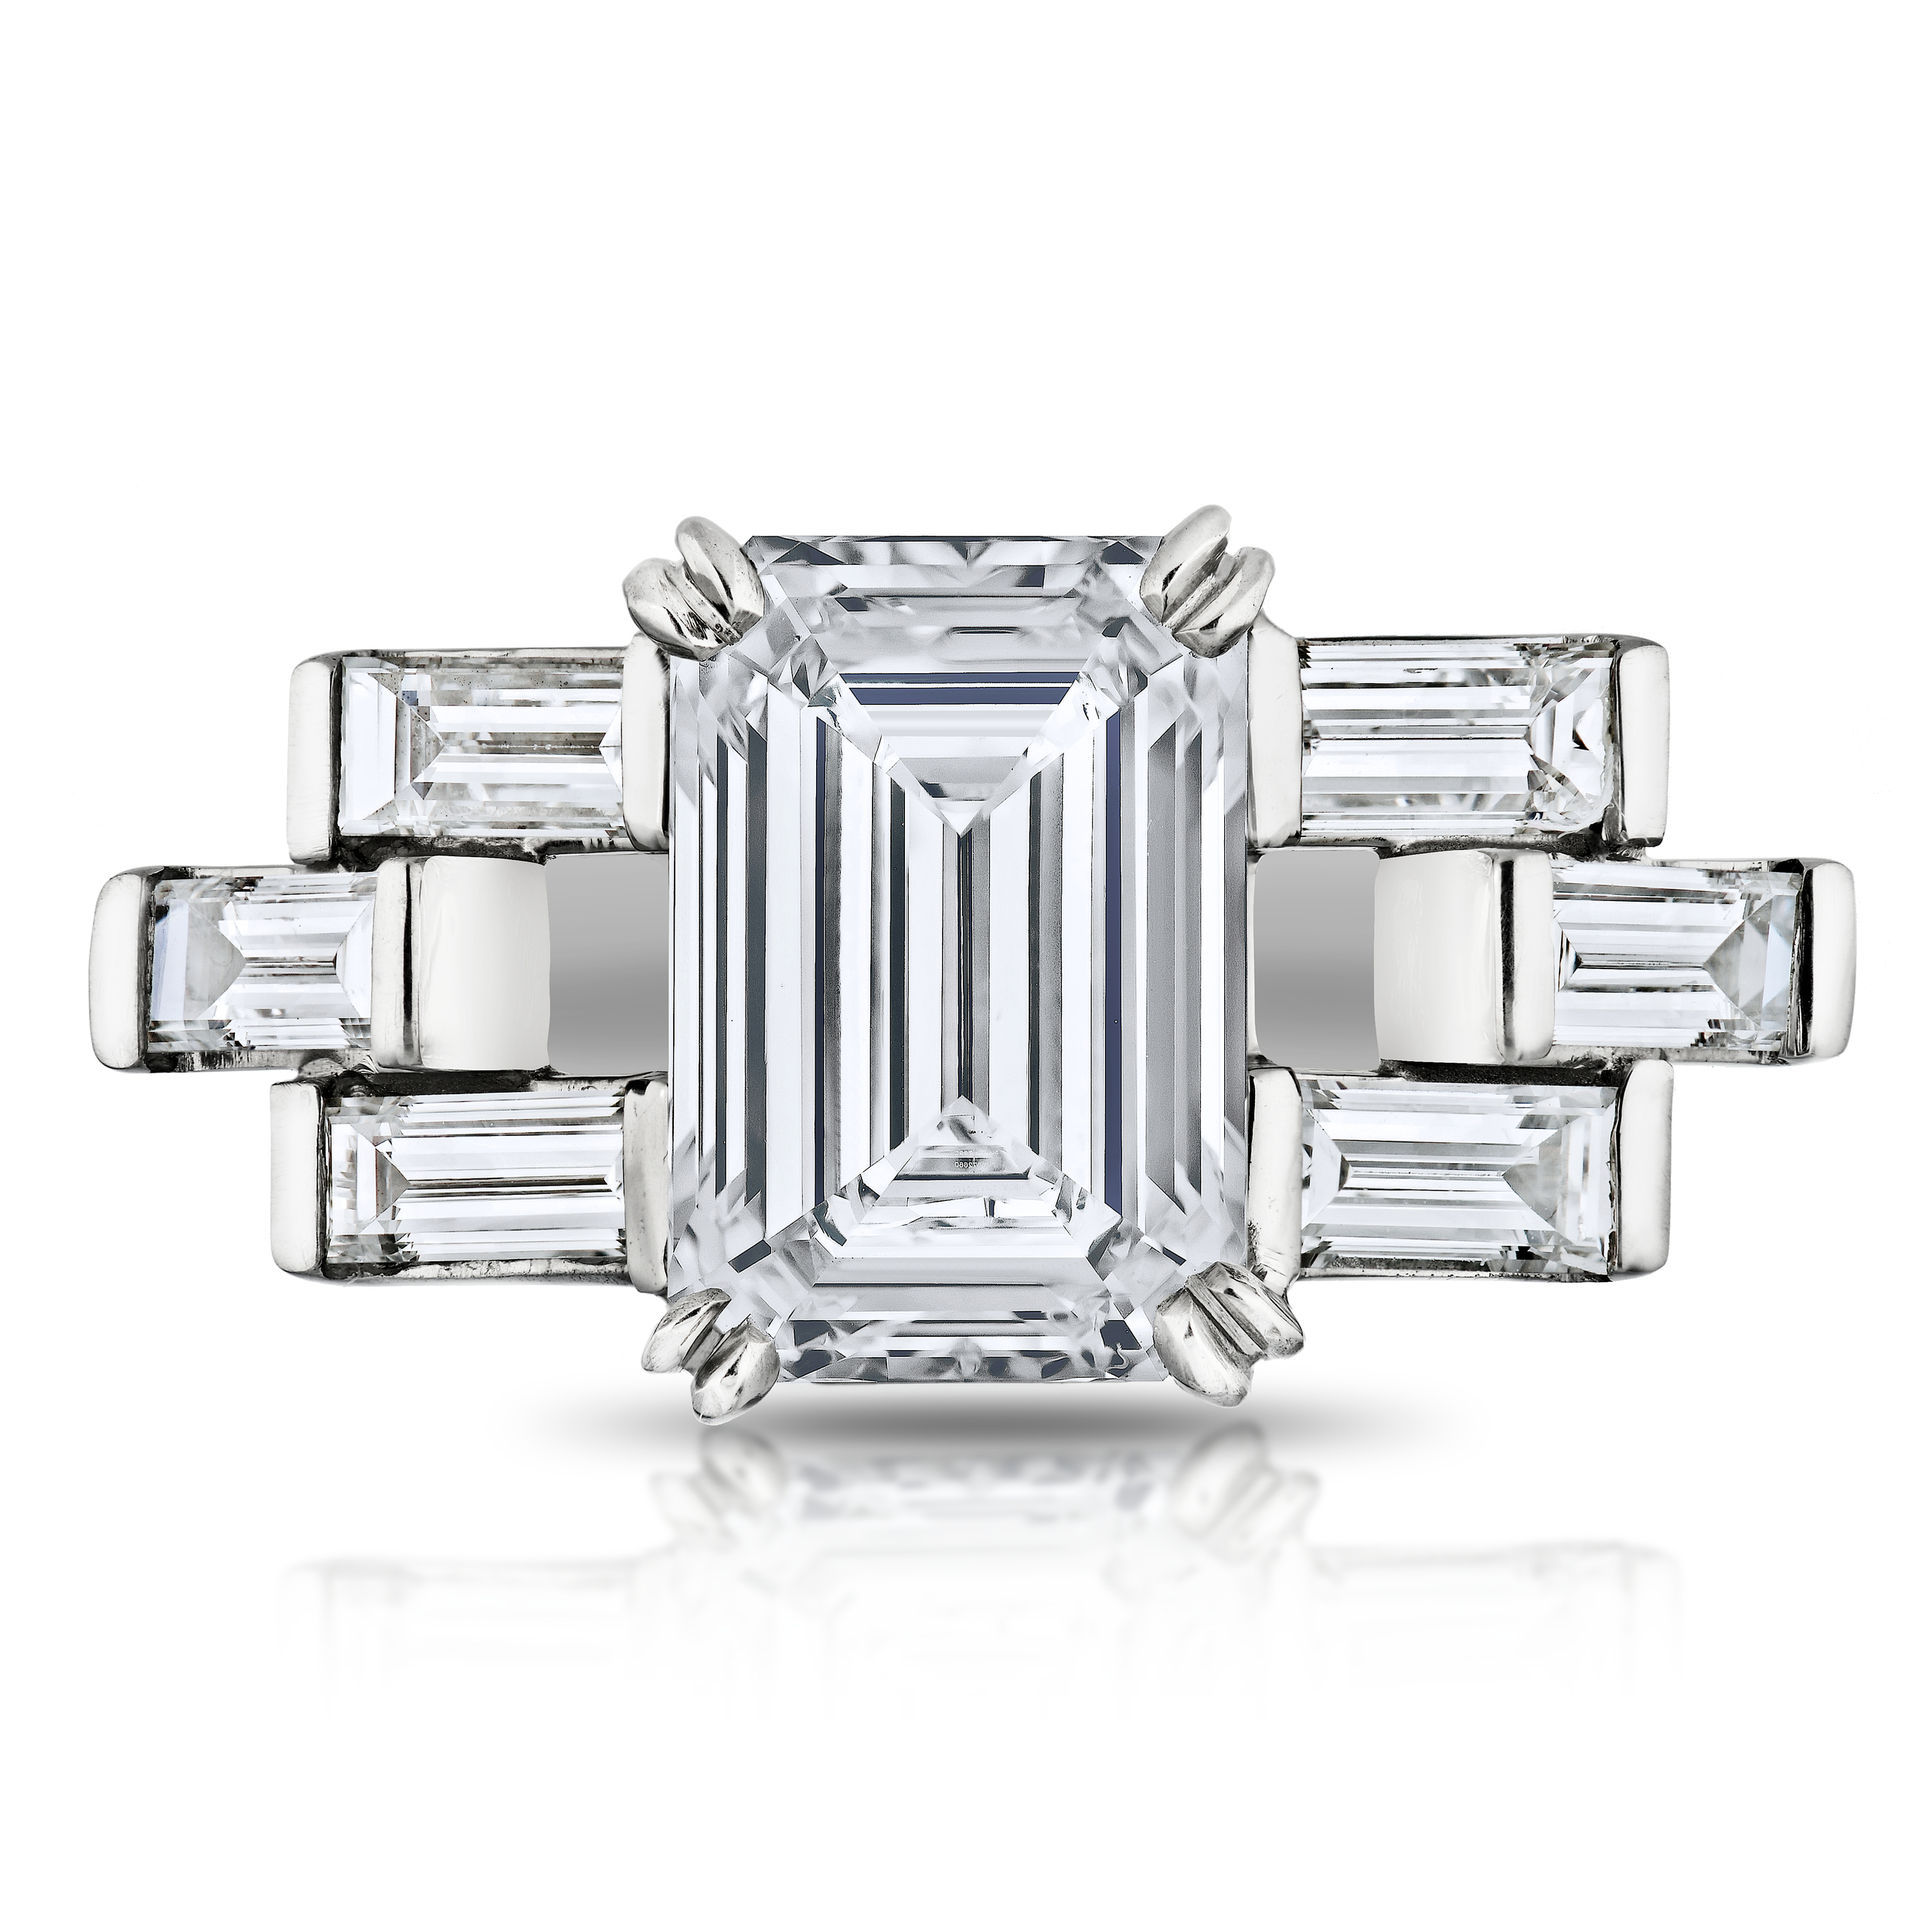 TRILOGY RING WITH EMERALD CUT CENTER DIAMOND AND SIX BAGUETTE CUT SIDE DIAMONDS, CRAFTED IN PLATINUM,  3.45 CTW